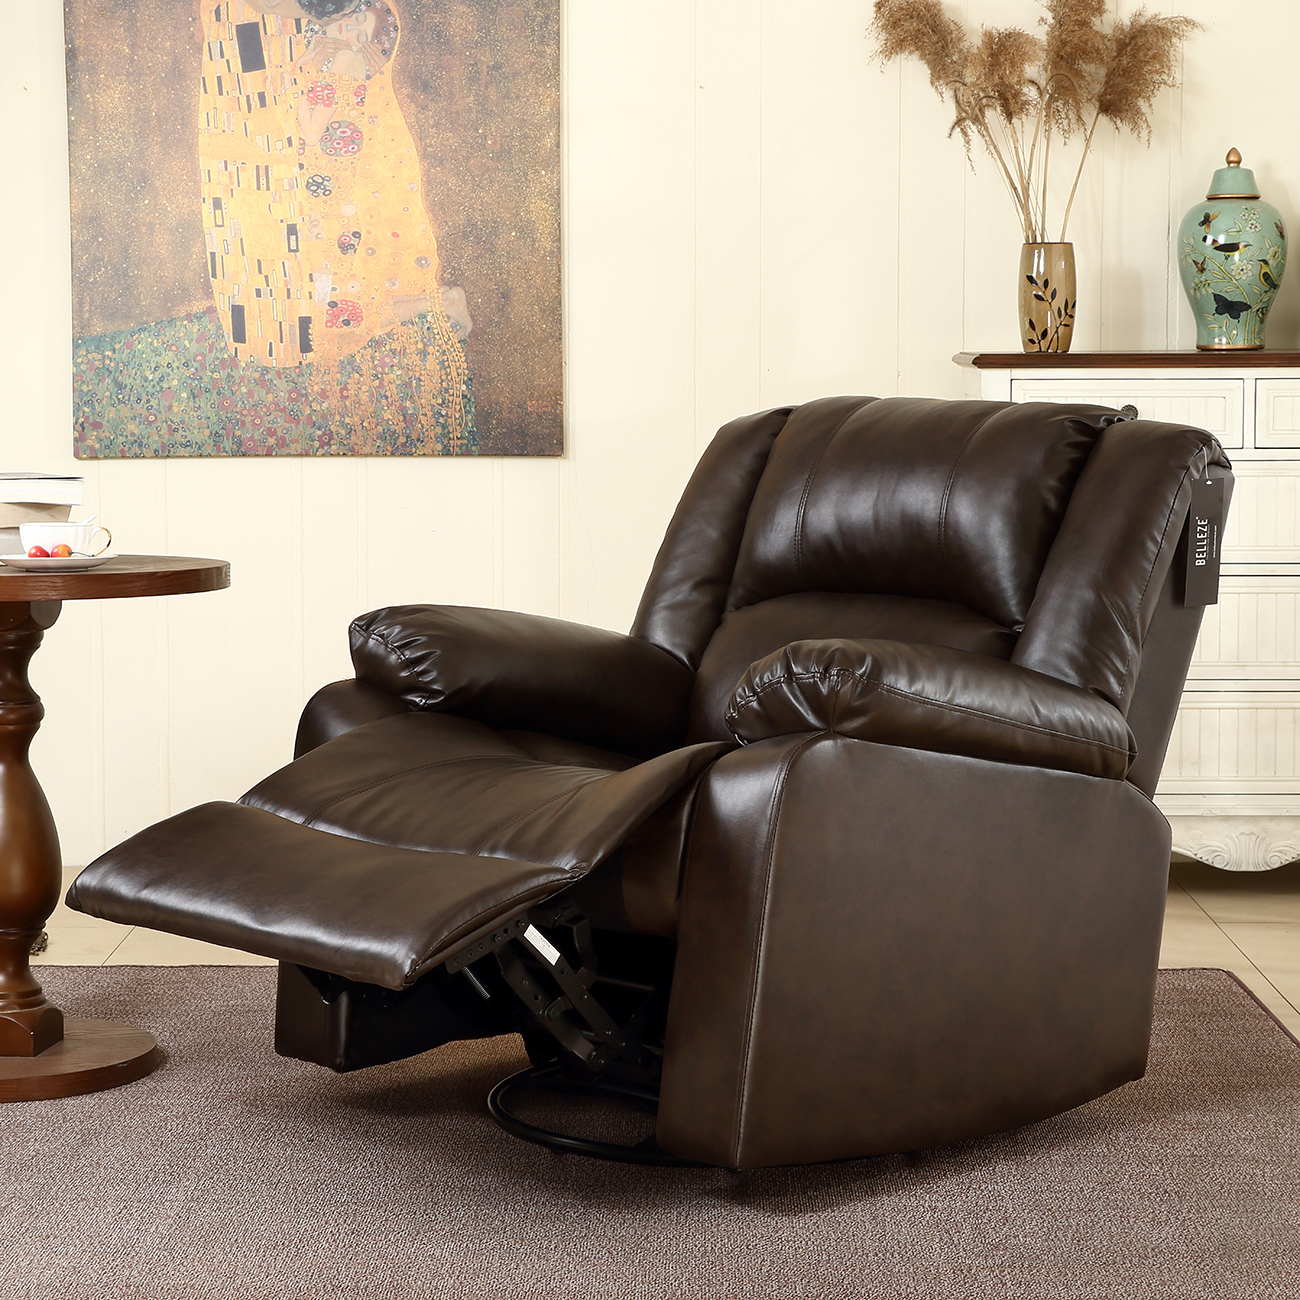 leather for chair seats new recliner and rocking swivel chair leather seat living 16632 | 014 hg 31921 bro 5